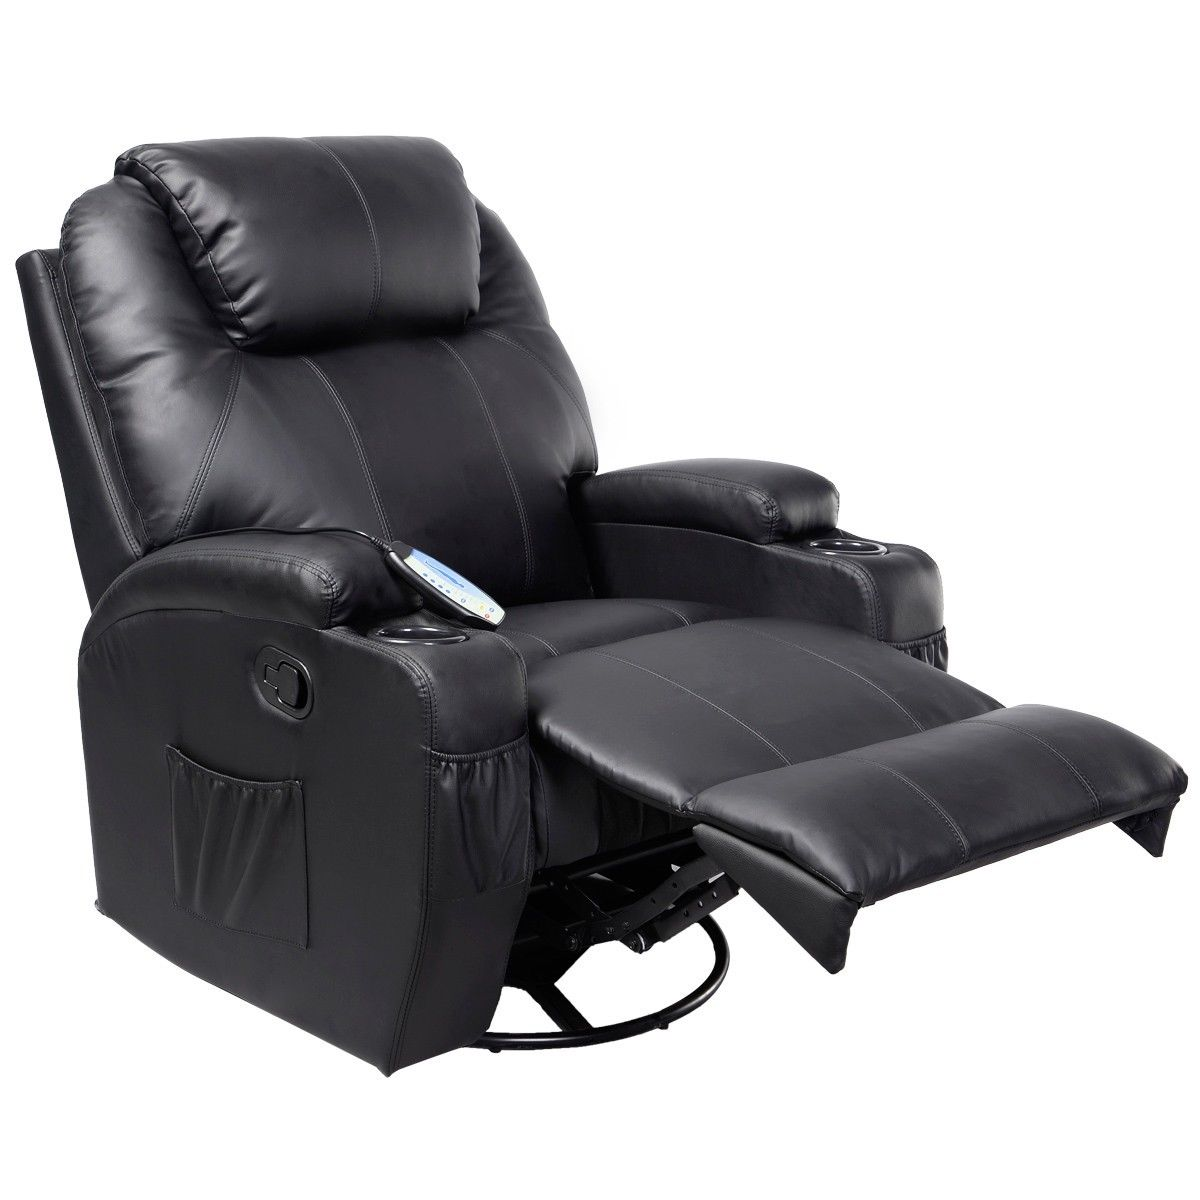 Giantex Electric Massage Chair Leather Recliner Sofa Chair